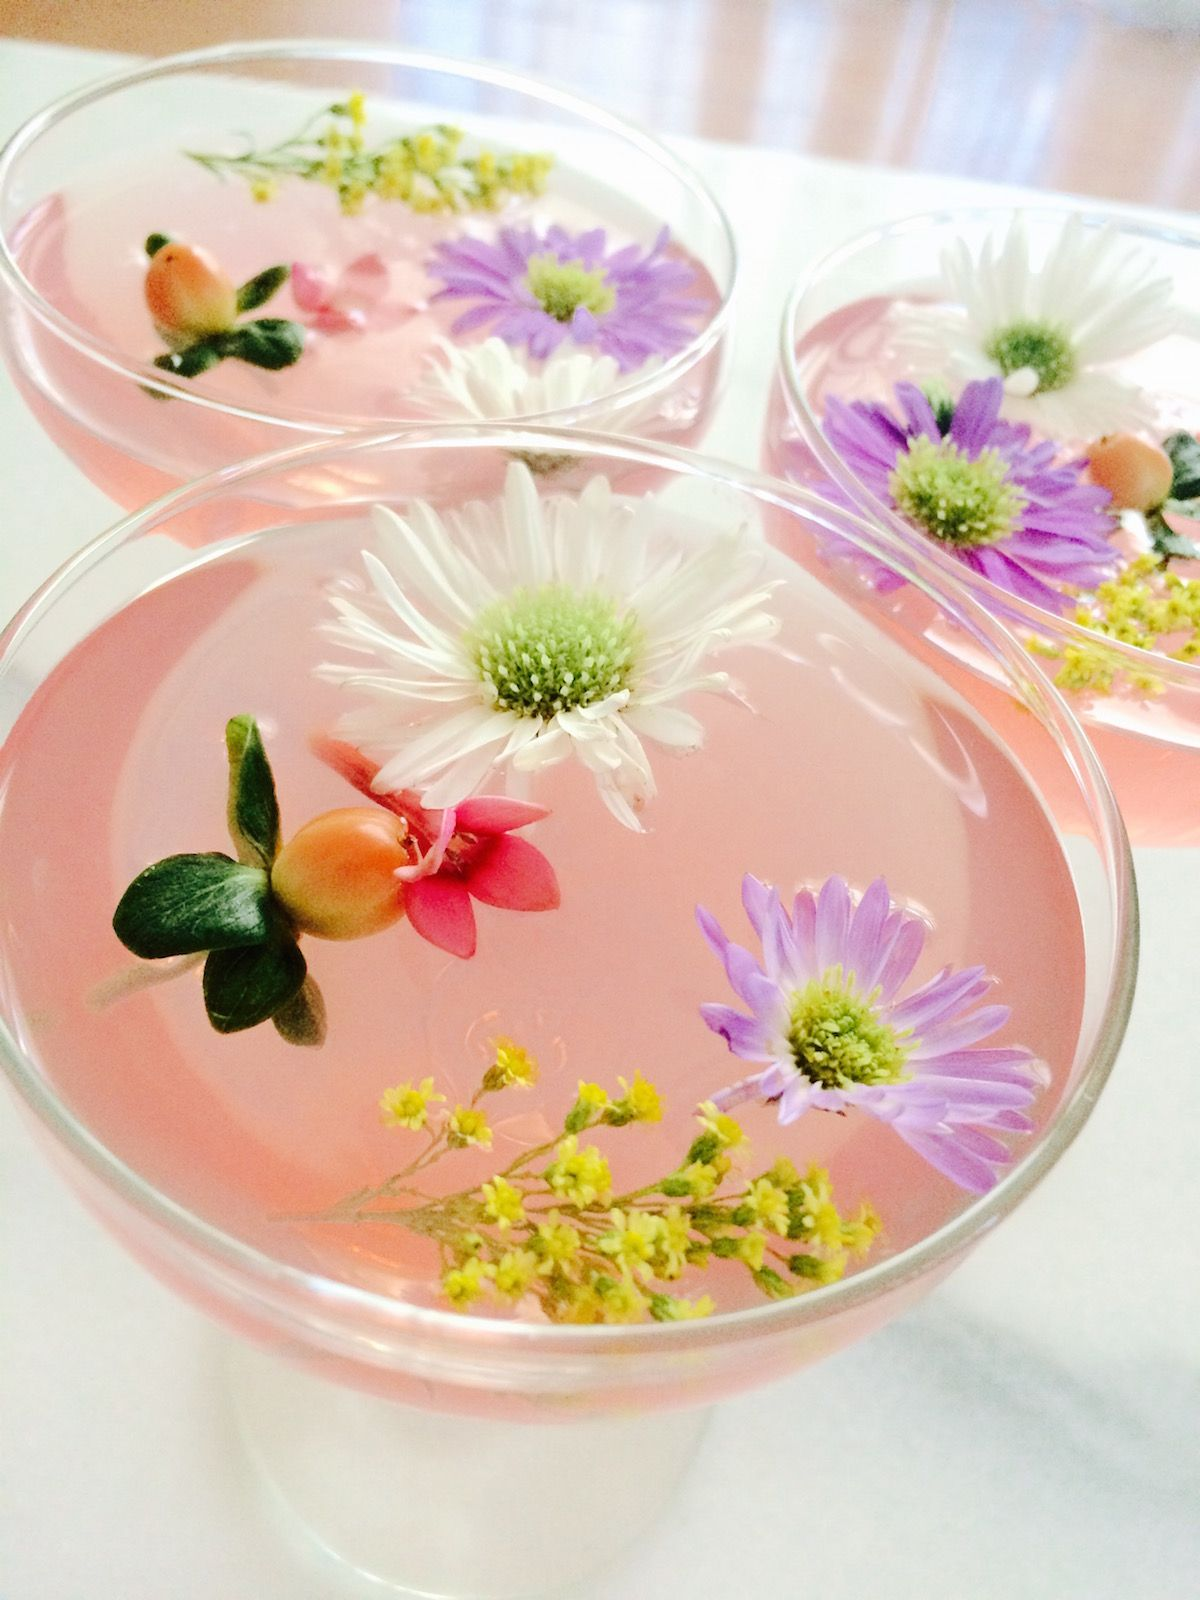 Celebrate Spring With This Beautiful & Delicious Edible Flower Cocktail